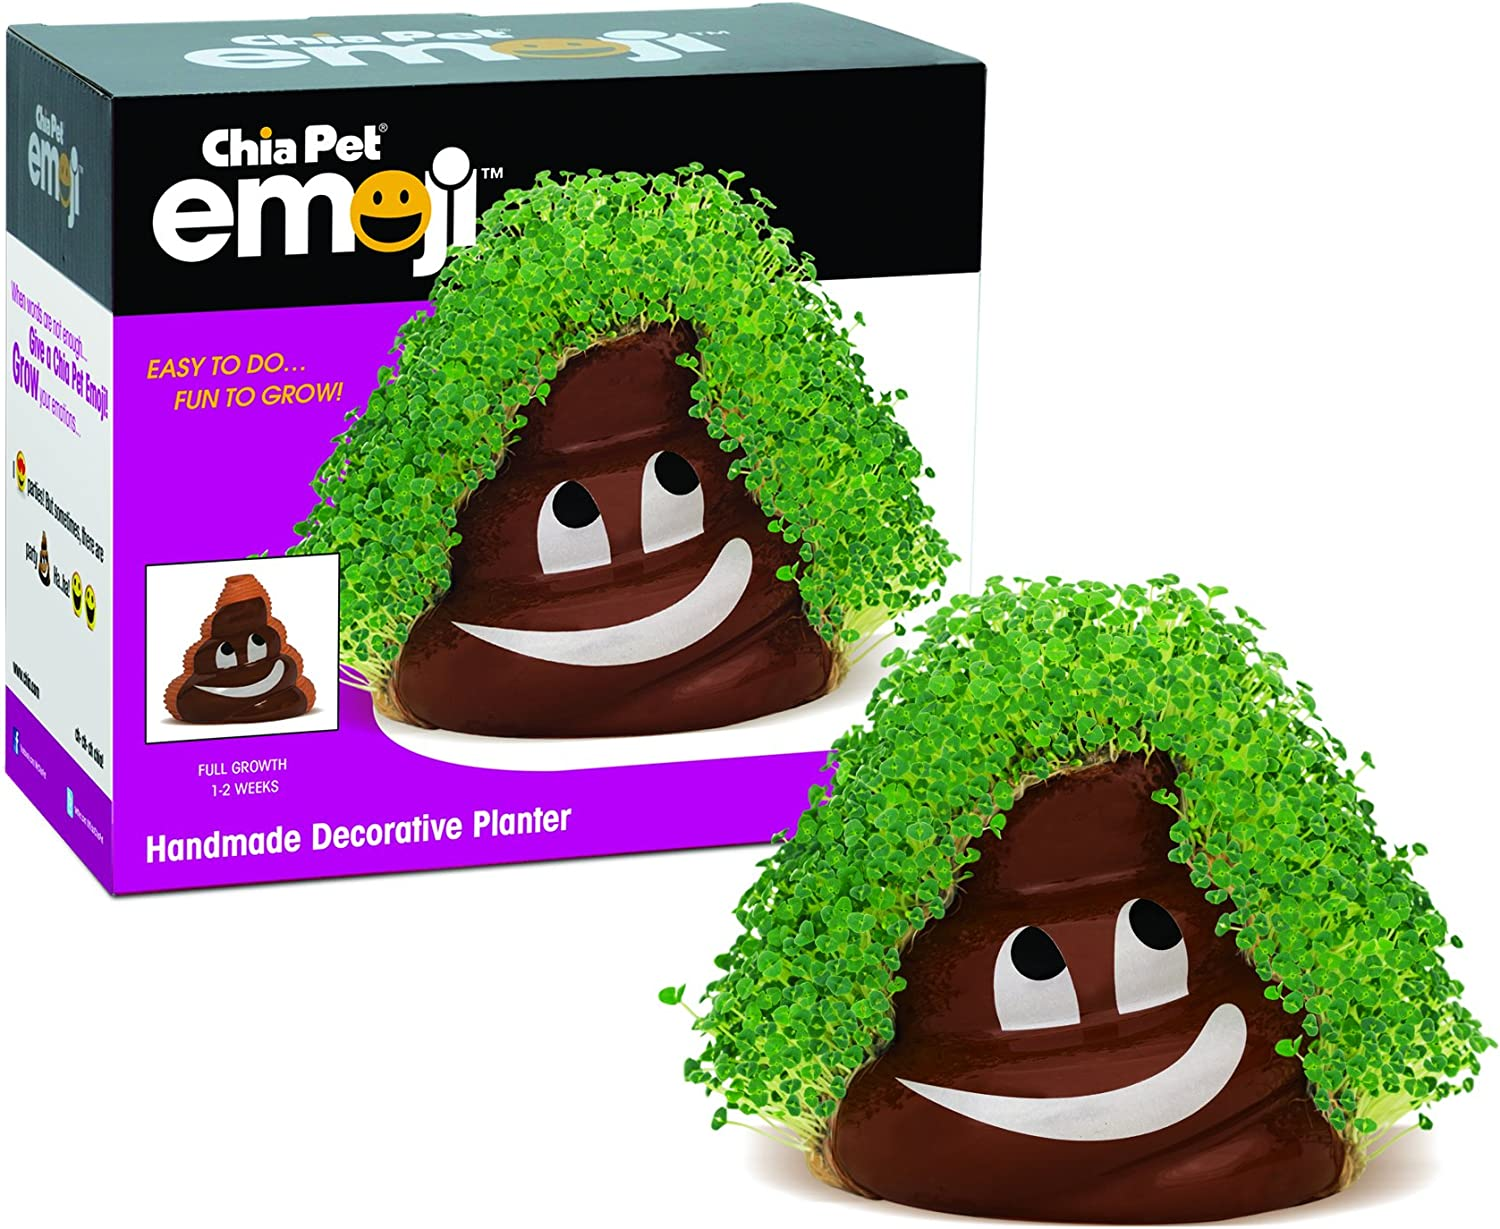 Chia Pet Emoji Poopy with Seed Pack, Decorative Pottery Planter, Easy to Do and Fun to Grow, Novelty Gift, Perfect for Any Occasion